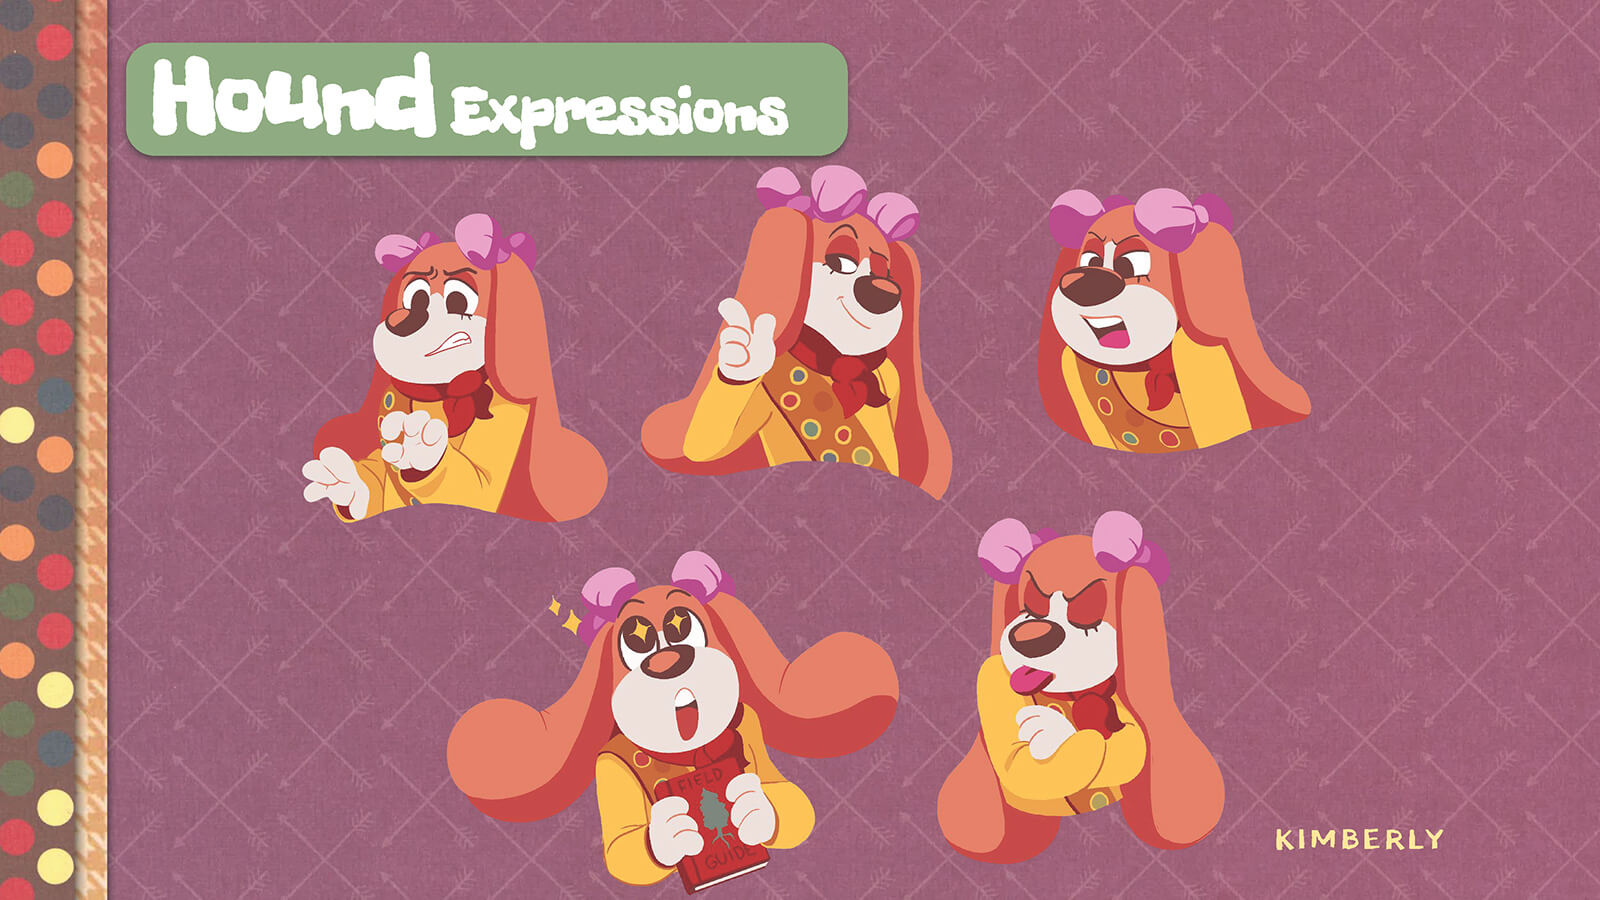 Facial expressions of the character Hound.